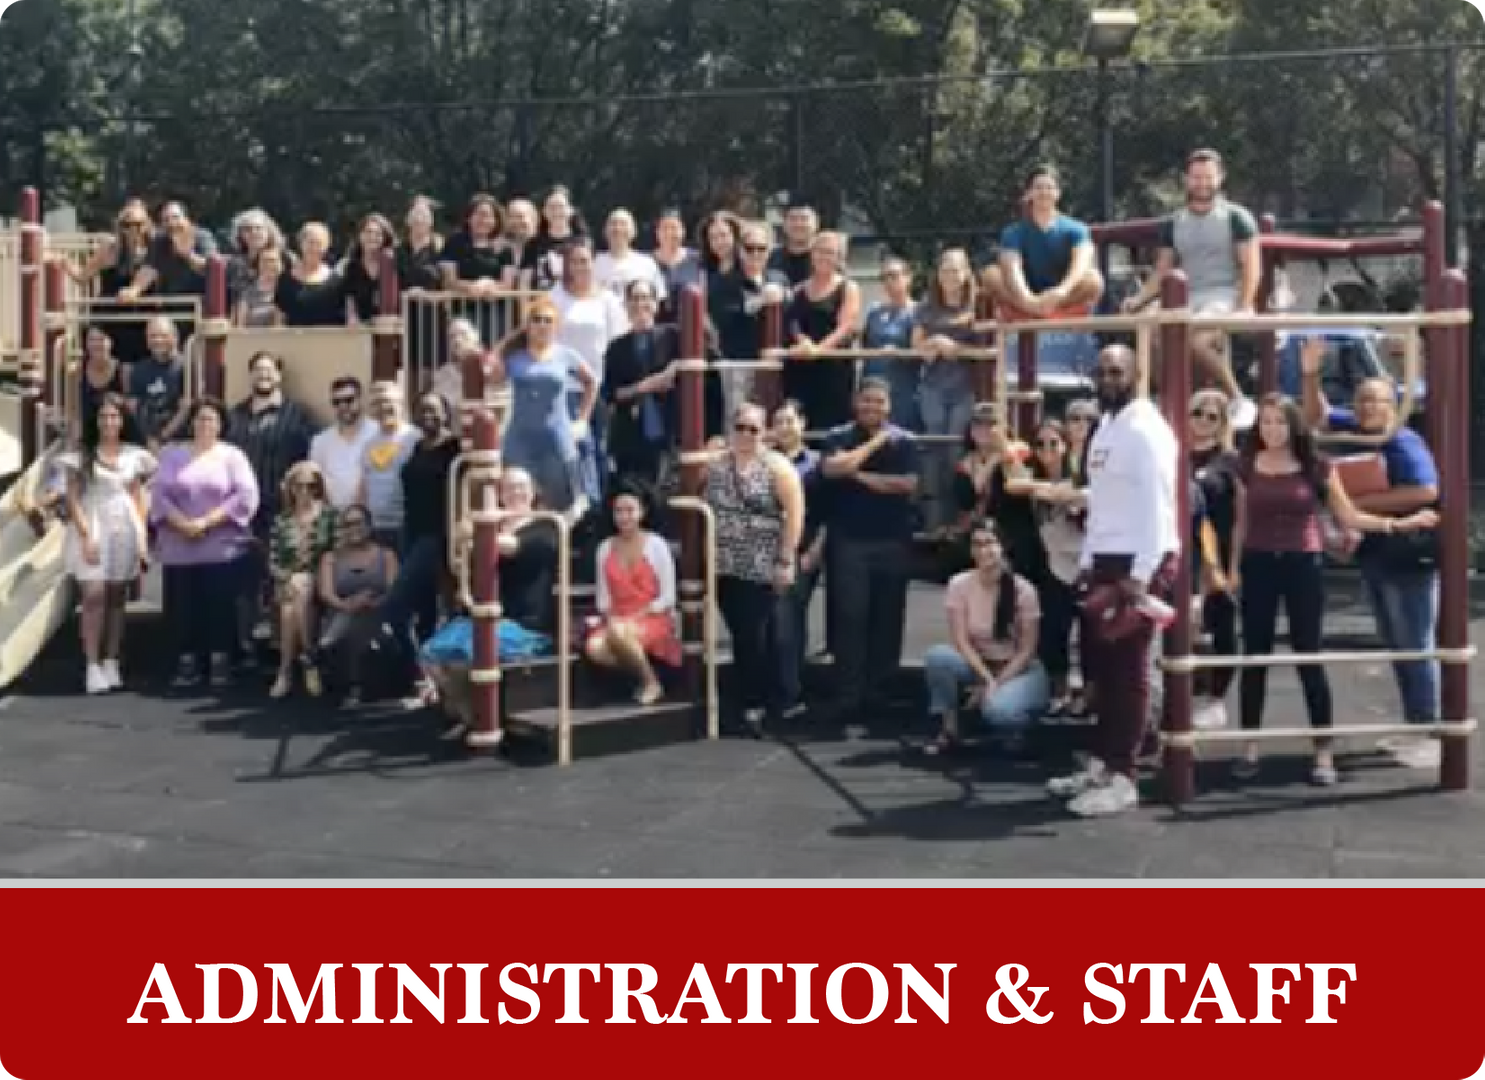 Administration & Staff: group picture of staff standing in a playground